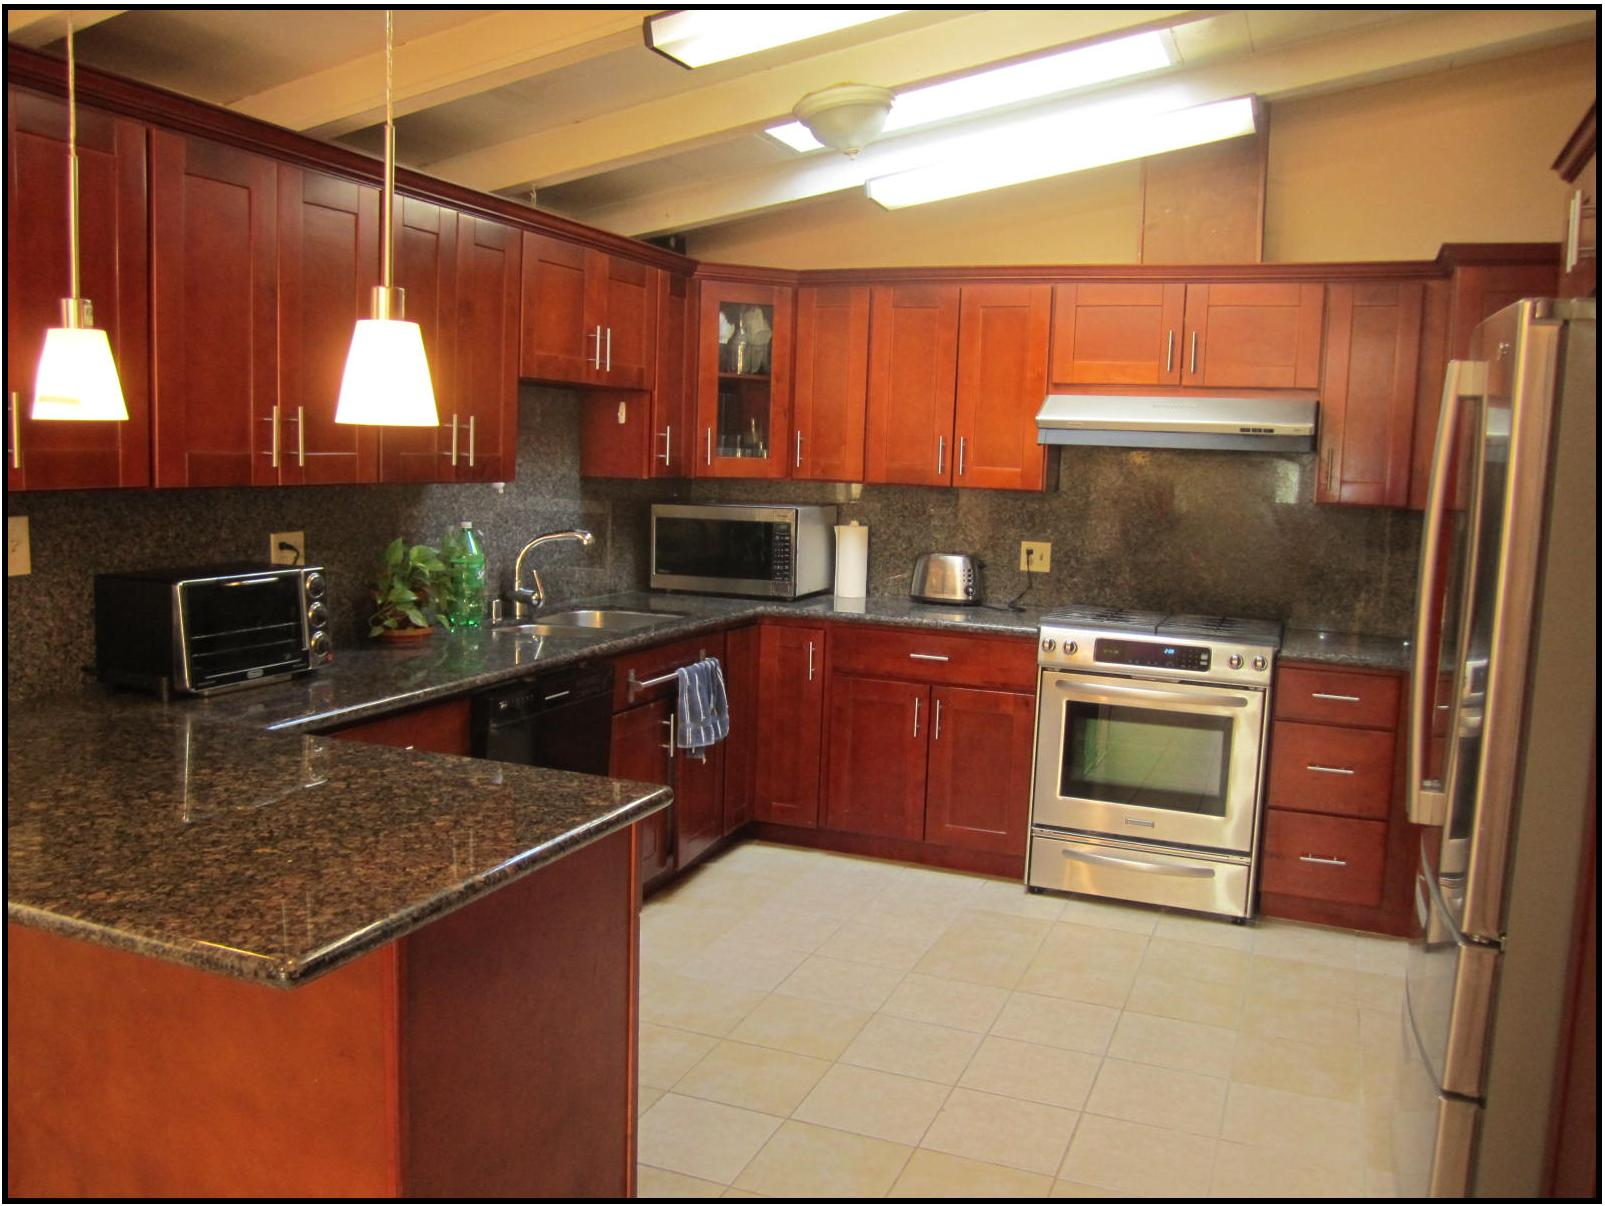 images of remodeled kitchens kitchen linens brand new listing large 5 bed 3 bath sunnyvale